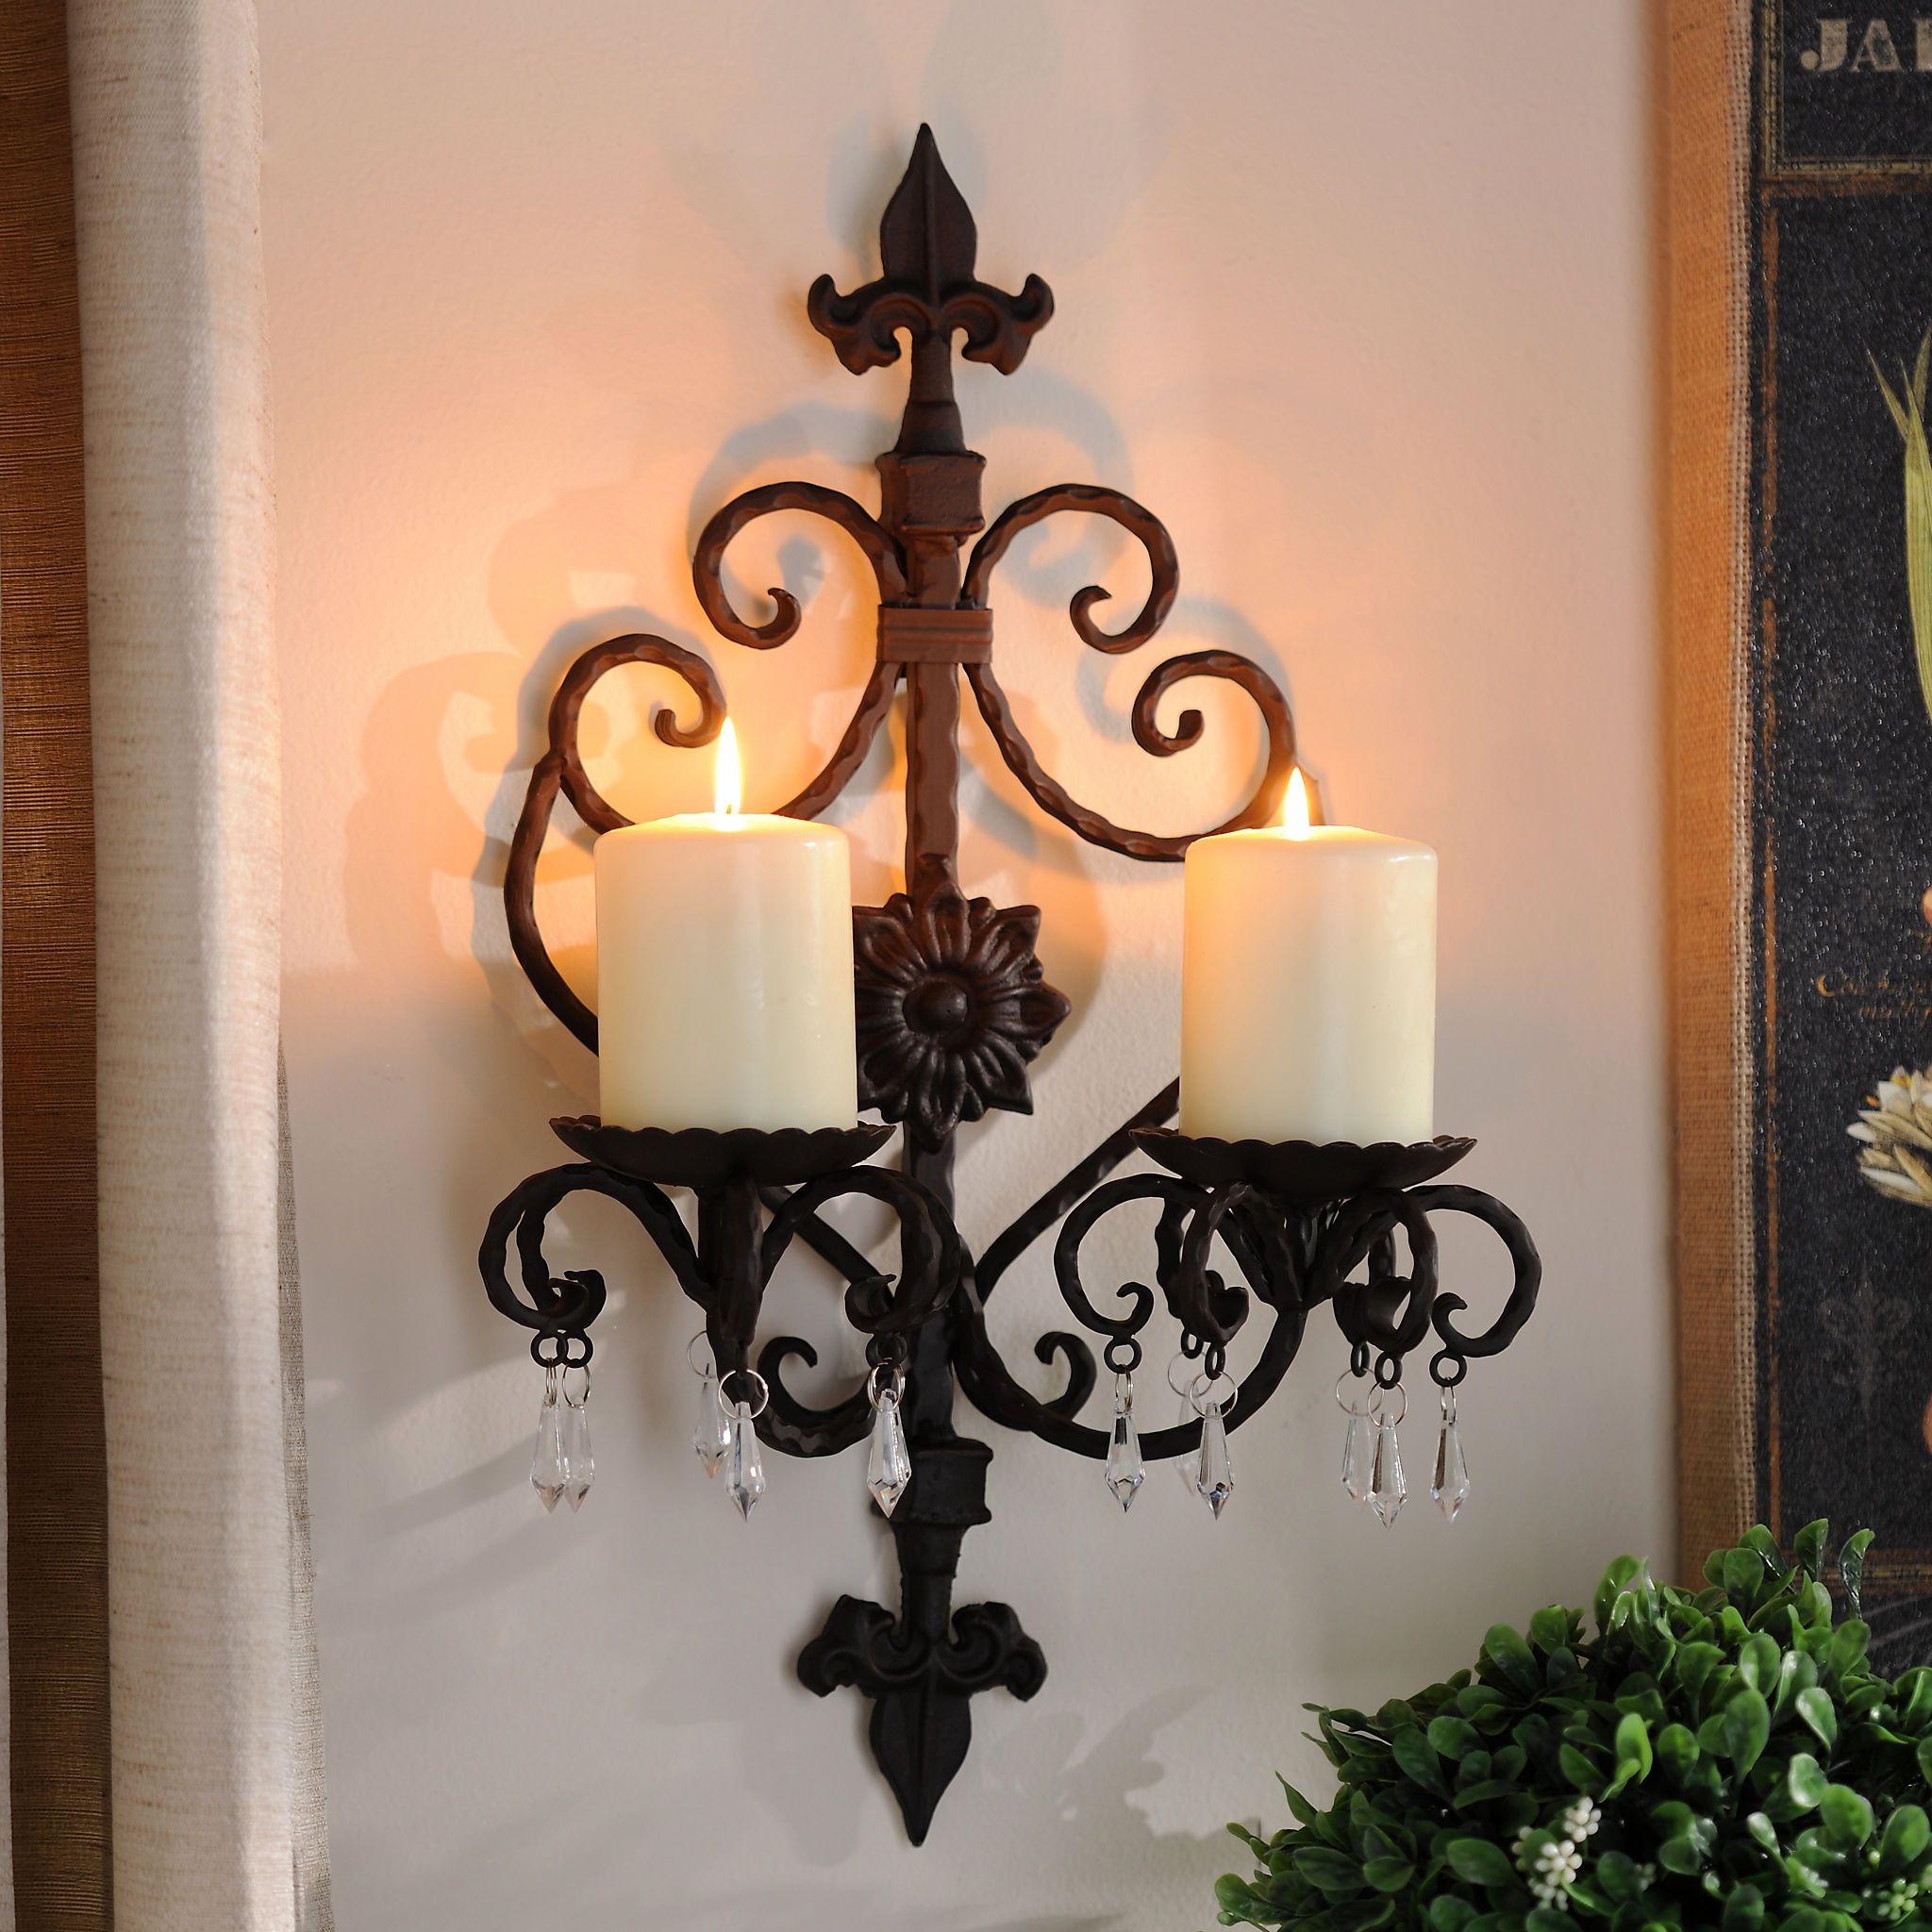 Kirkland S Candle Wall Sconces Candle Sconces Iron Wall Decor